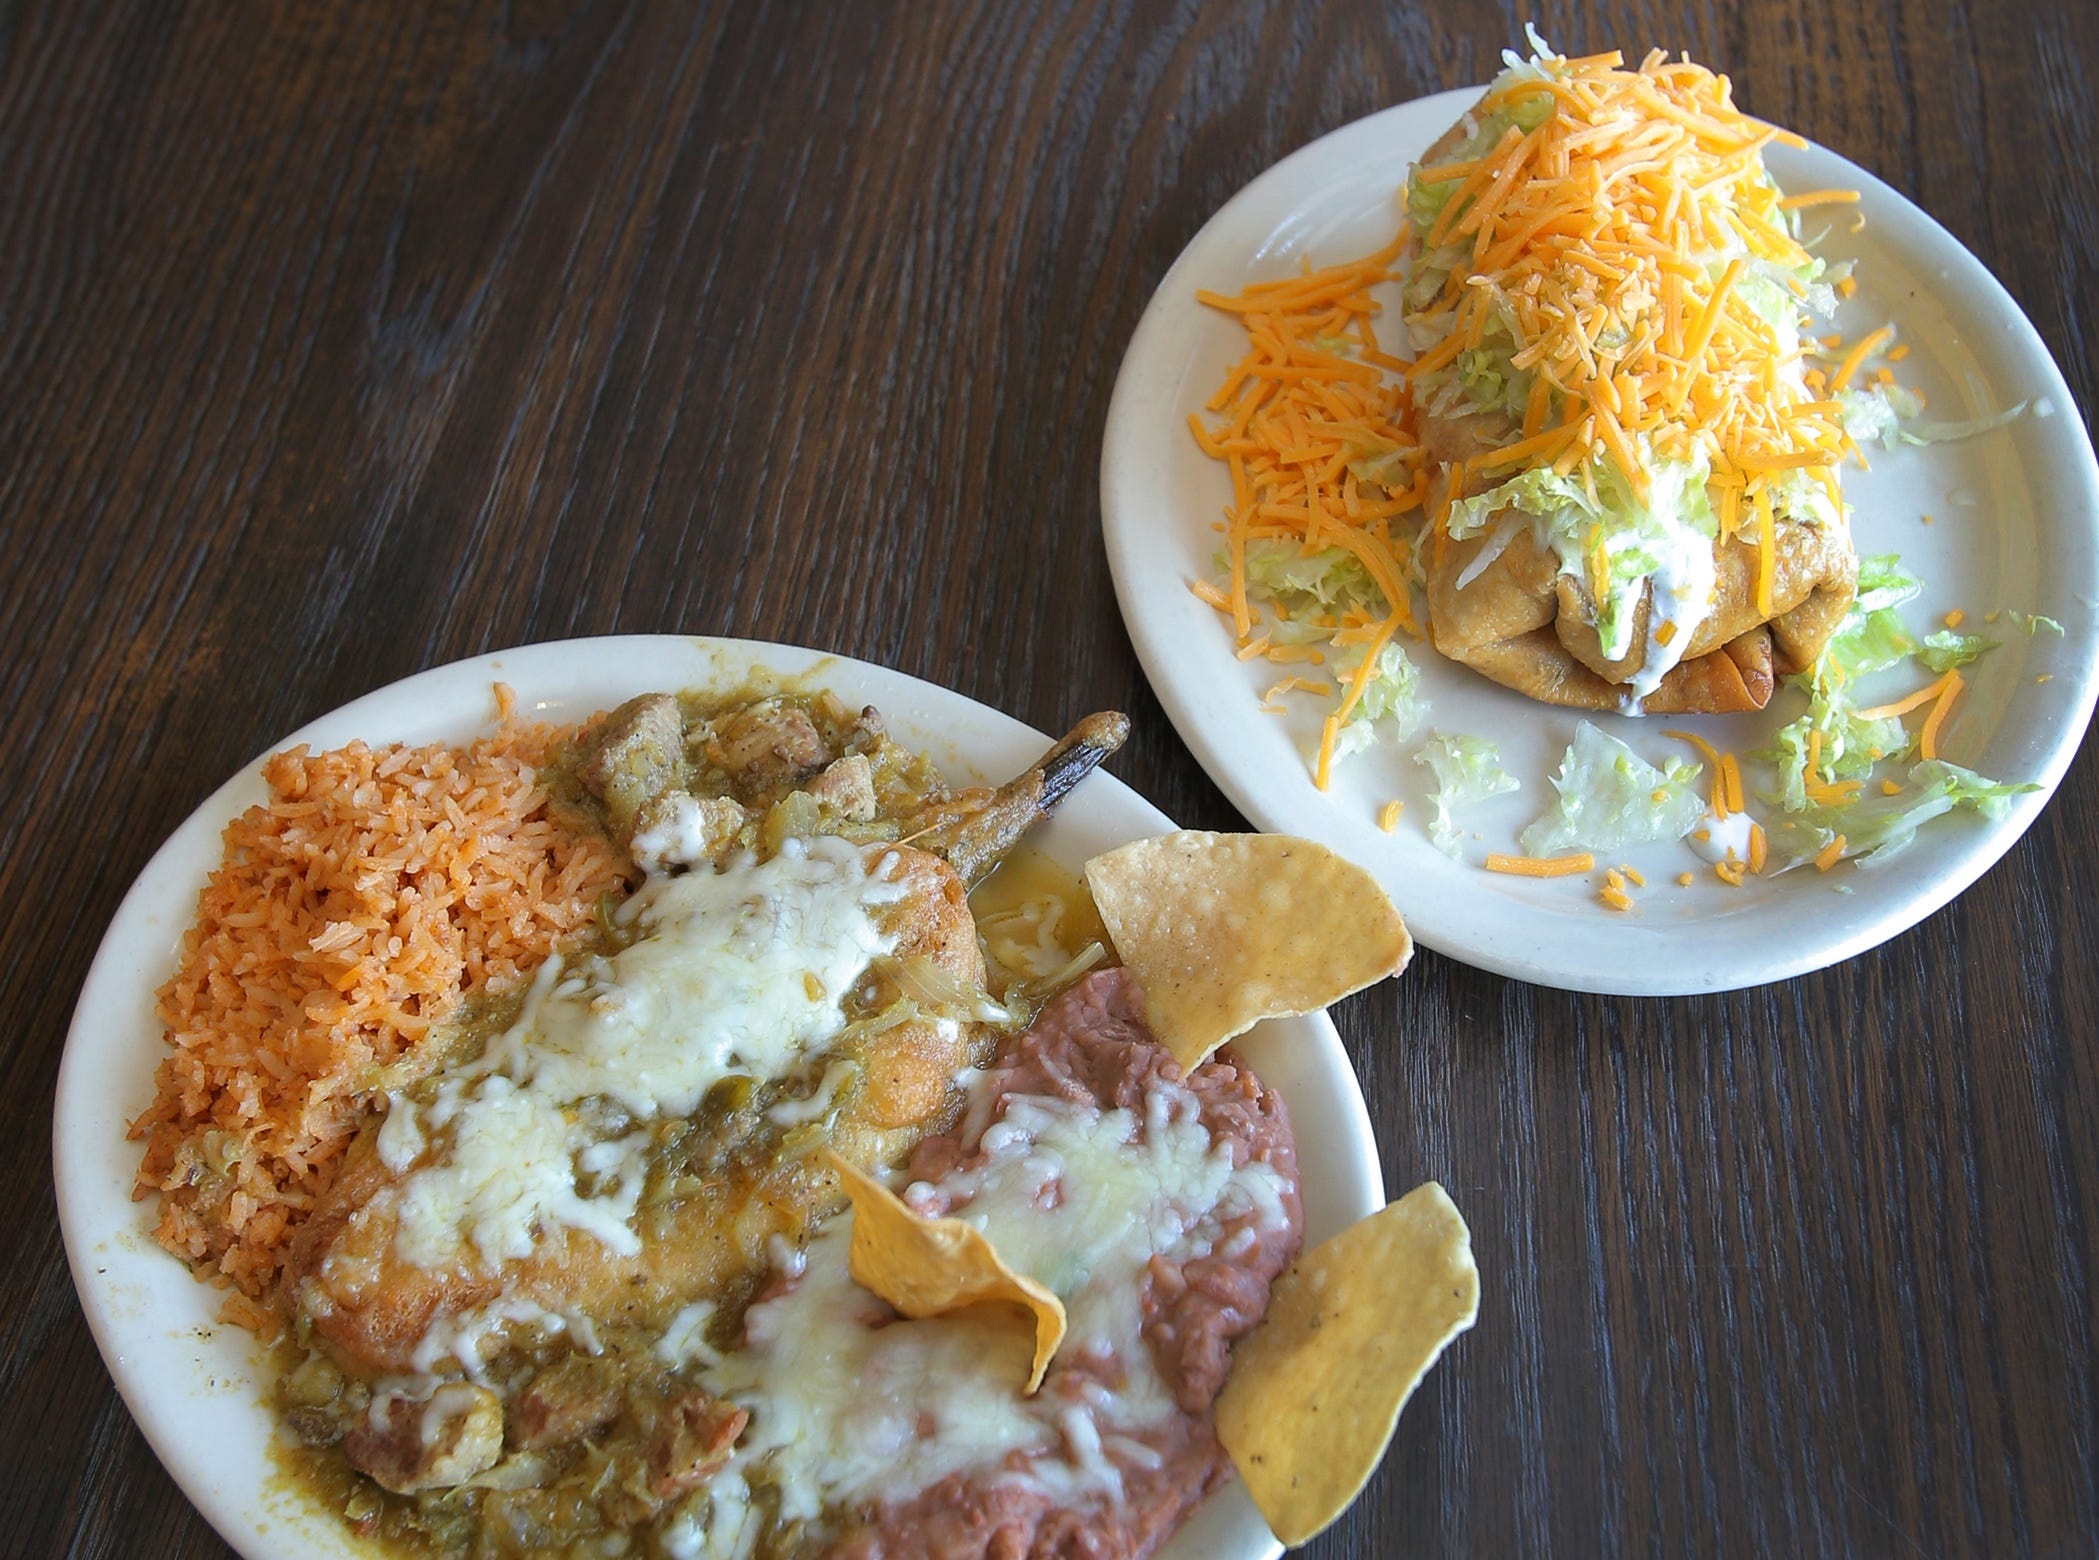 The Somis Café and Market has long been known for its large selection of authentic Mexican food. Pictured is its popular chile relleno plate and a chimichanga. The Somis Café and Market first opened in 1974.